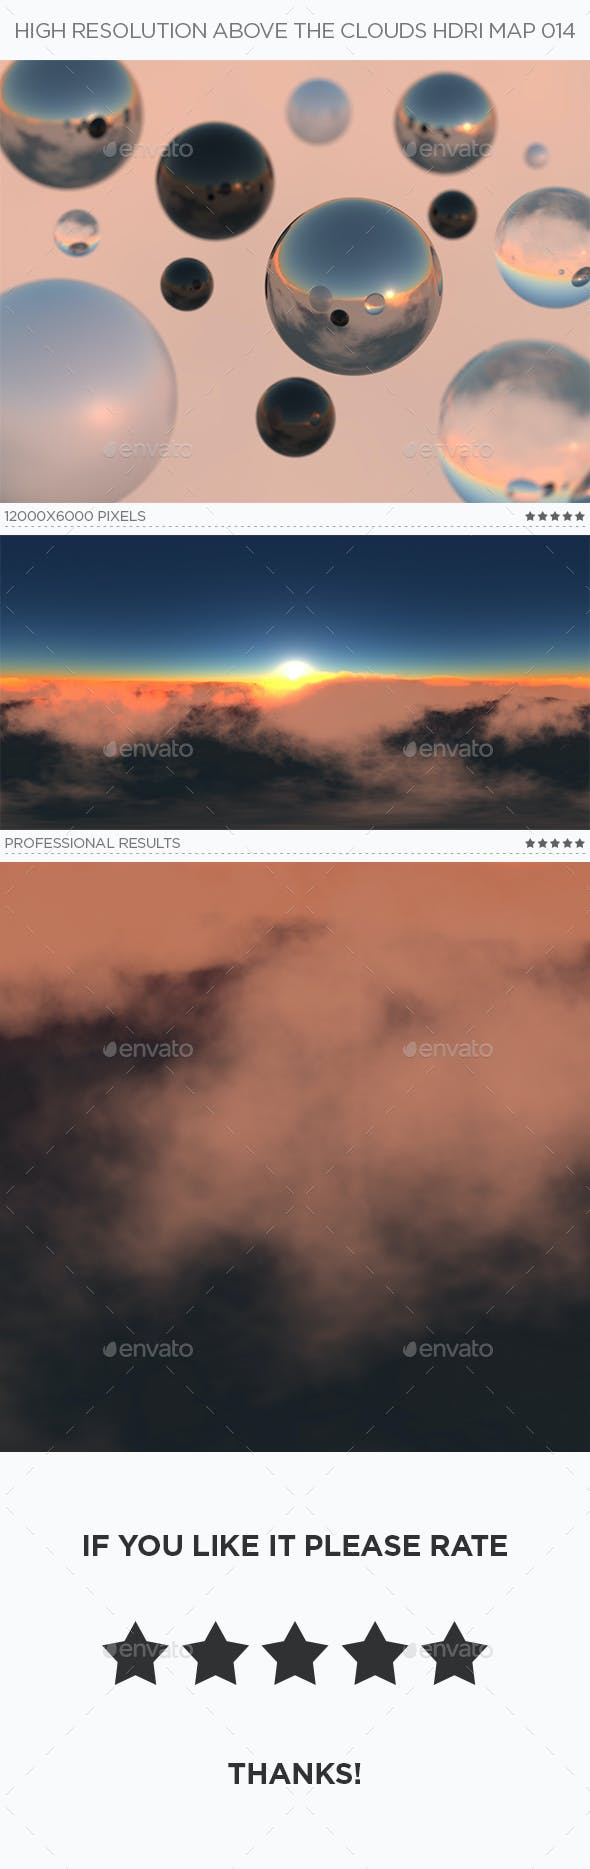 High Resolution Above The Clouds HDRi Map 014 - 3DOcean Item for Sale